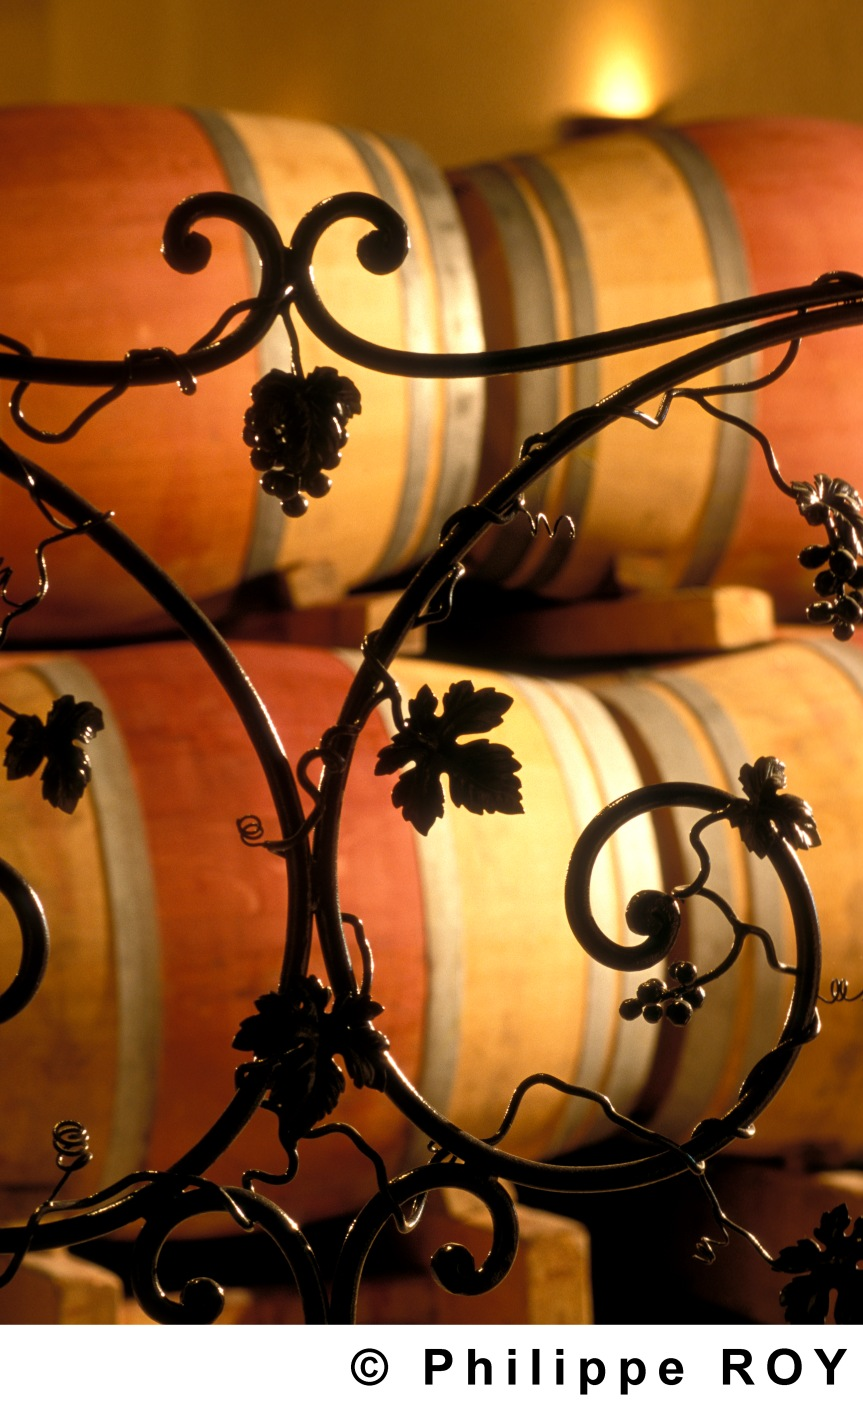 Get to know which are your favorite Grand Cru Bordeaux without breaking thebank